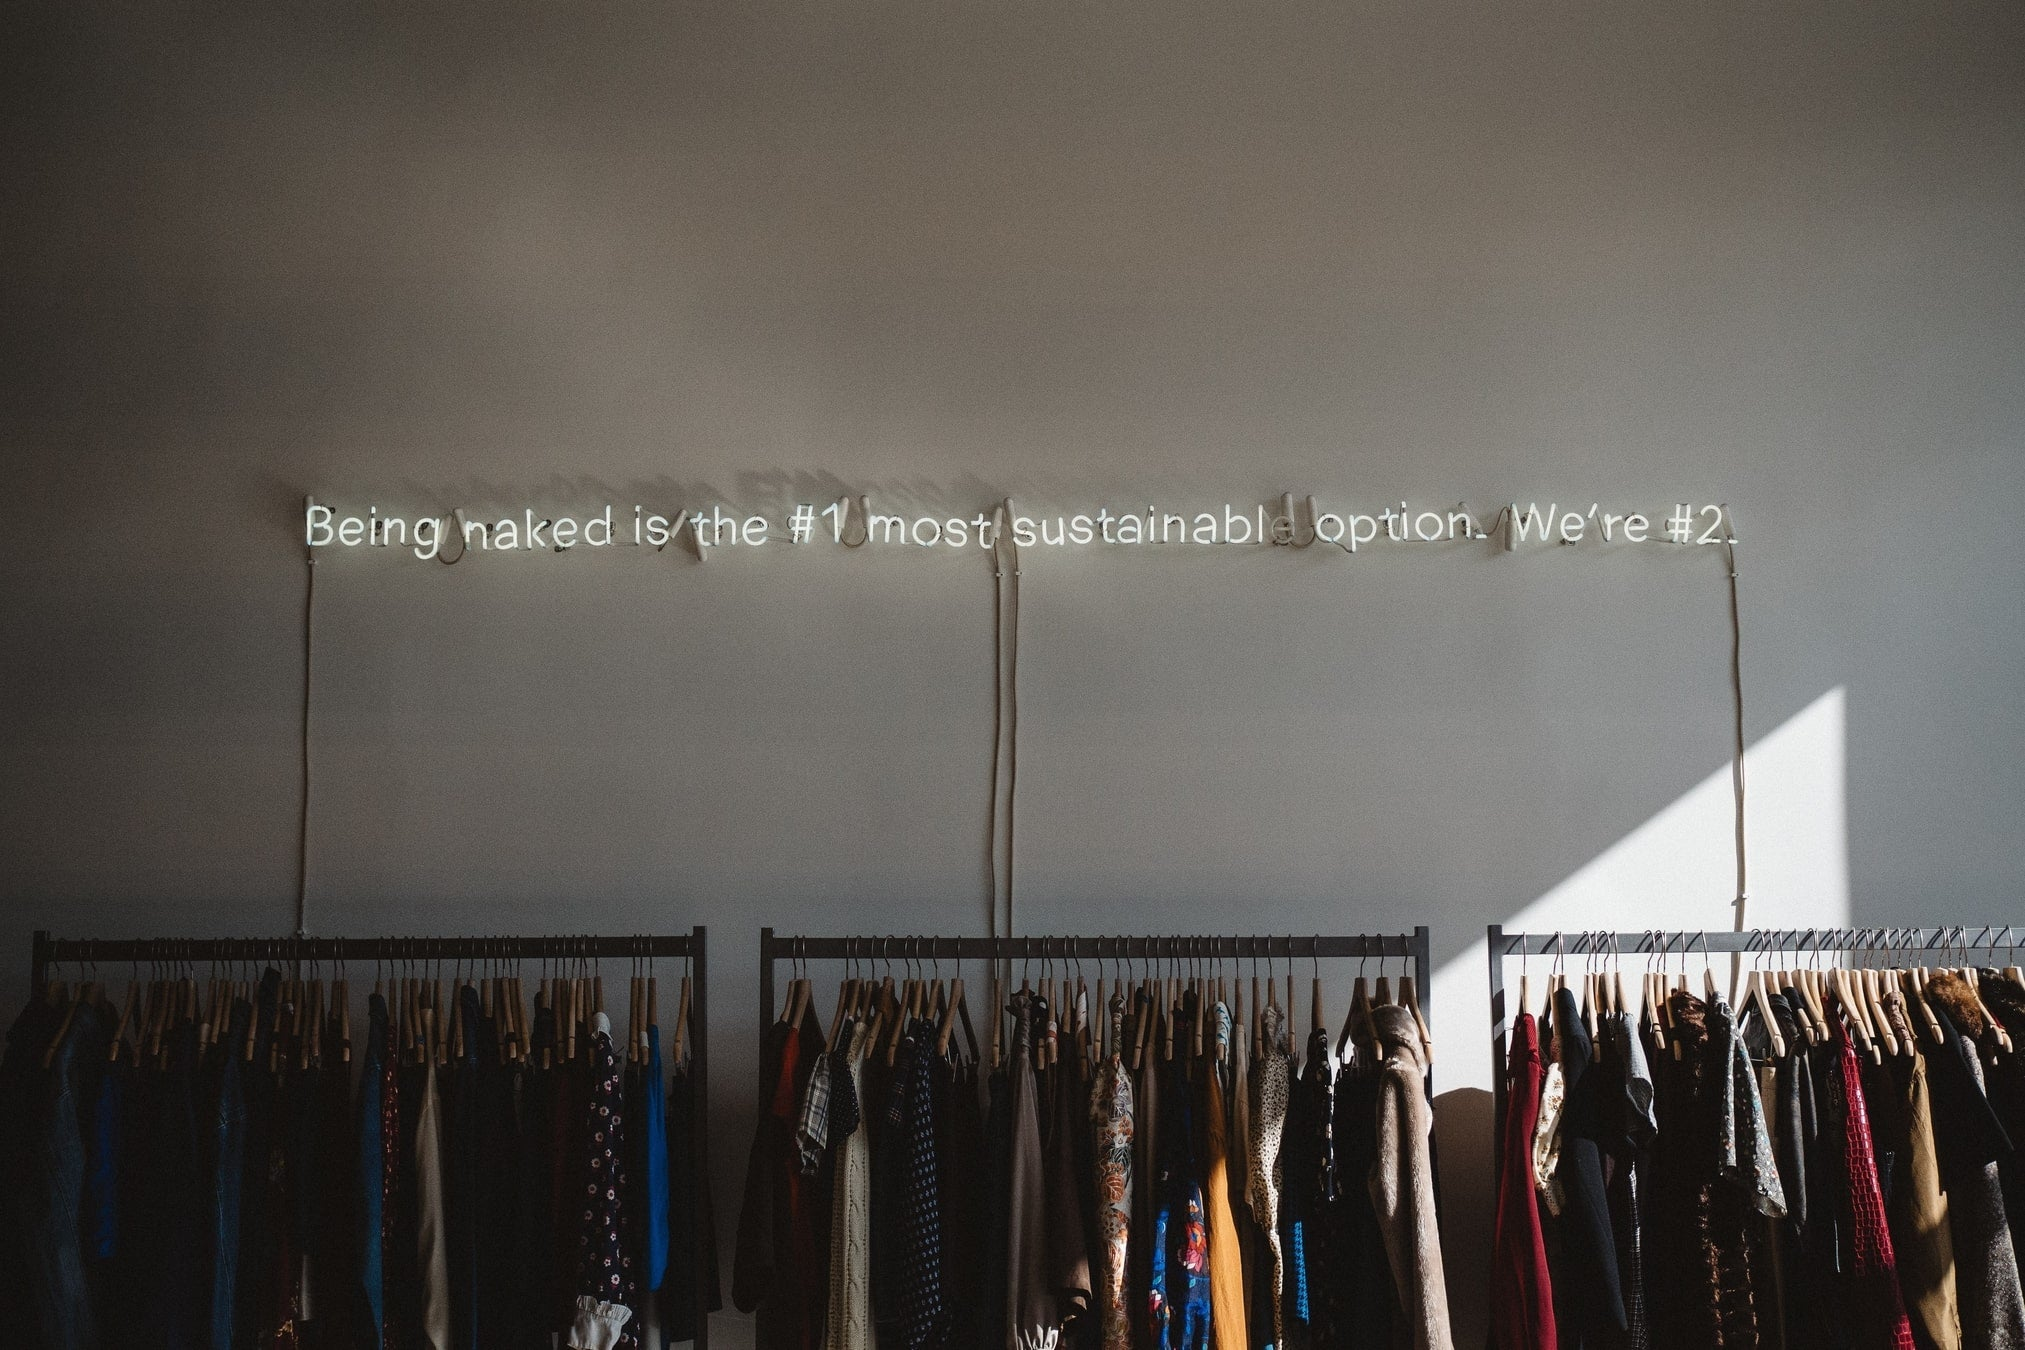 Mizo backpacks sustainable brand text displayed on the wall